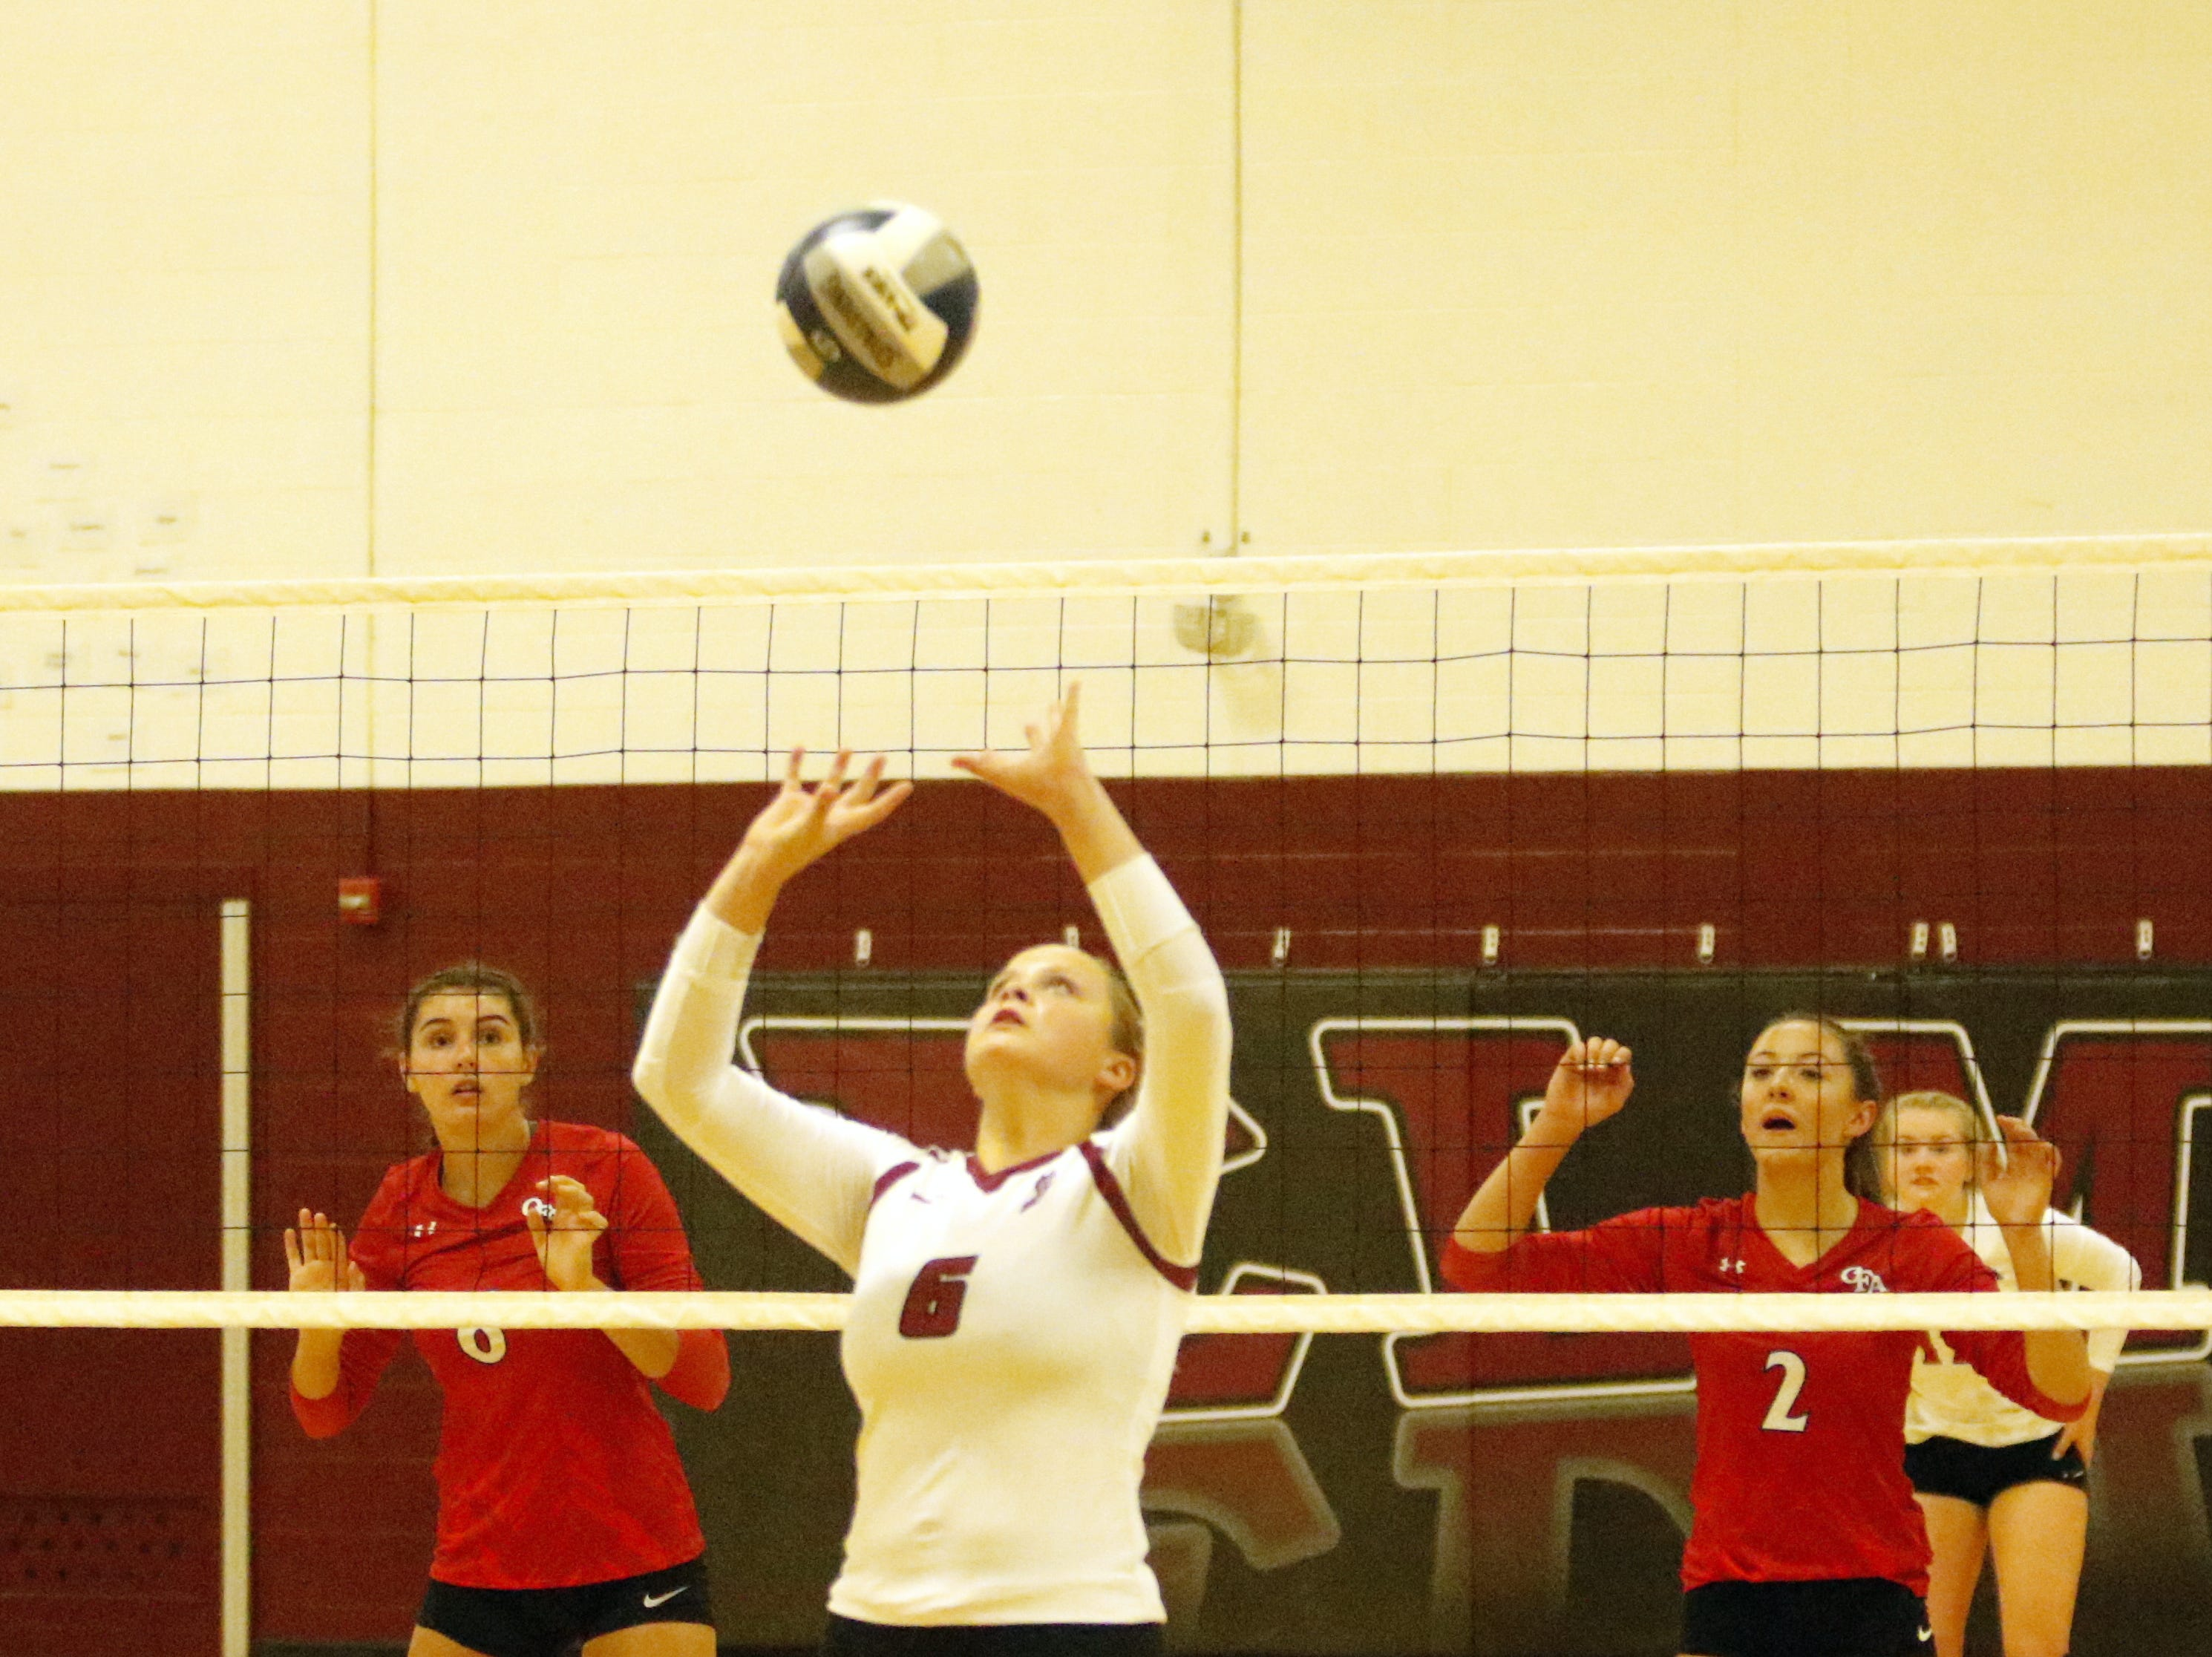 Owego was a 3-0 winner over Elmira in volleyball Sept. 11, 2018 at Elmira High School.